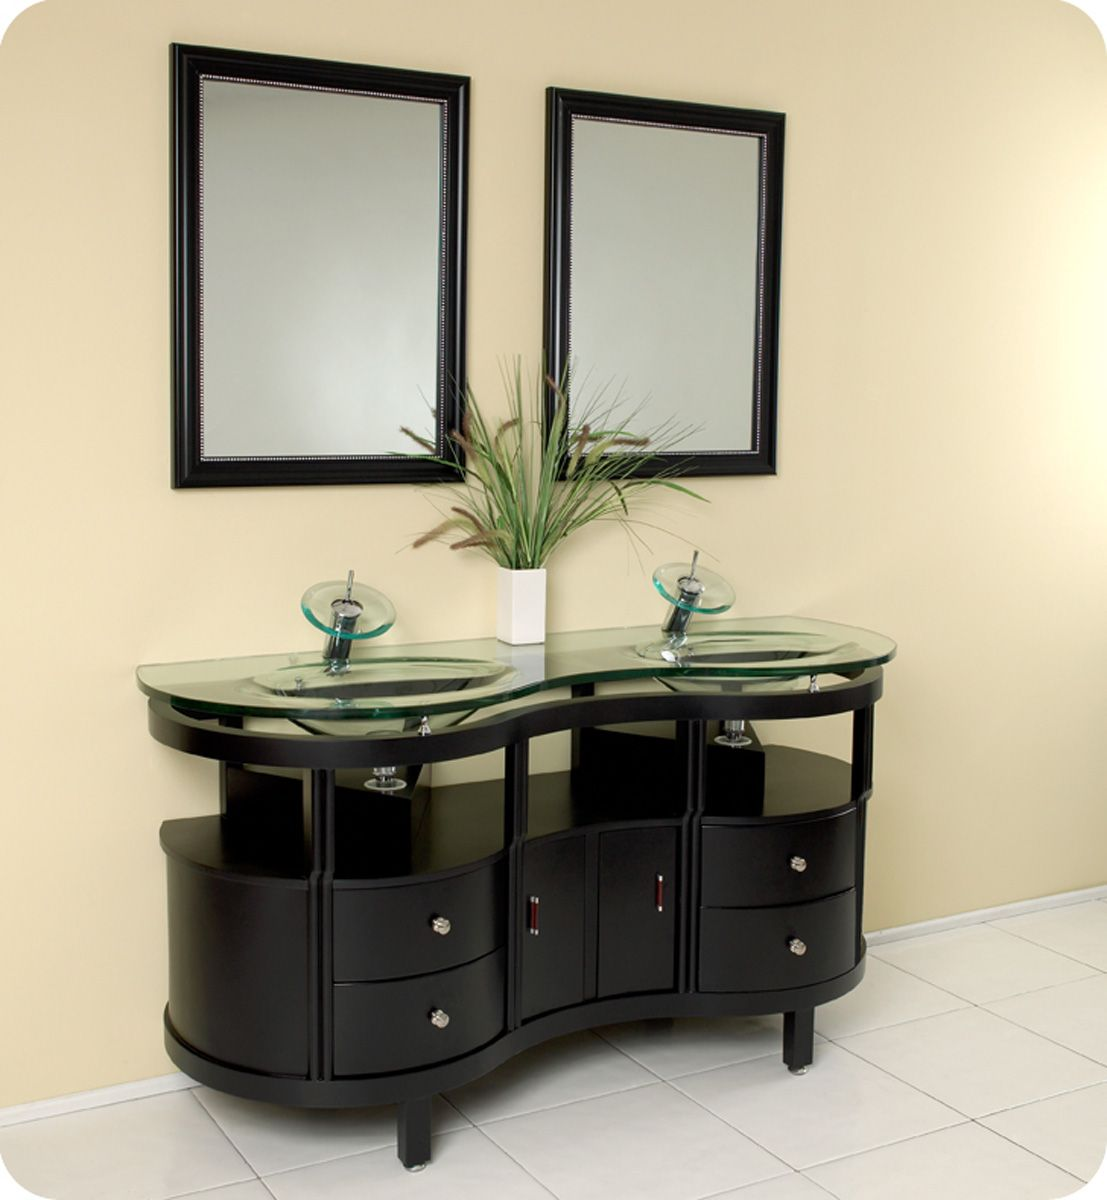 unico vanity with integrated glass countertop